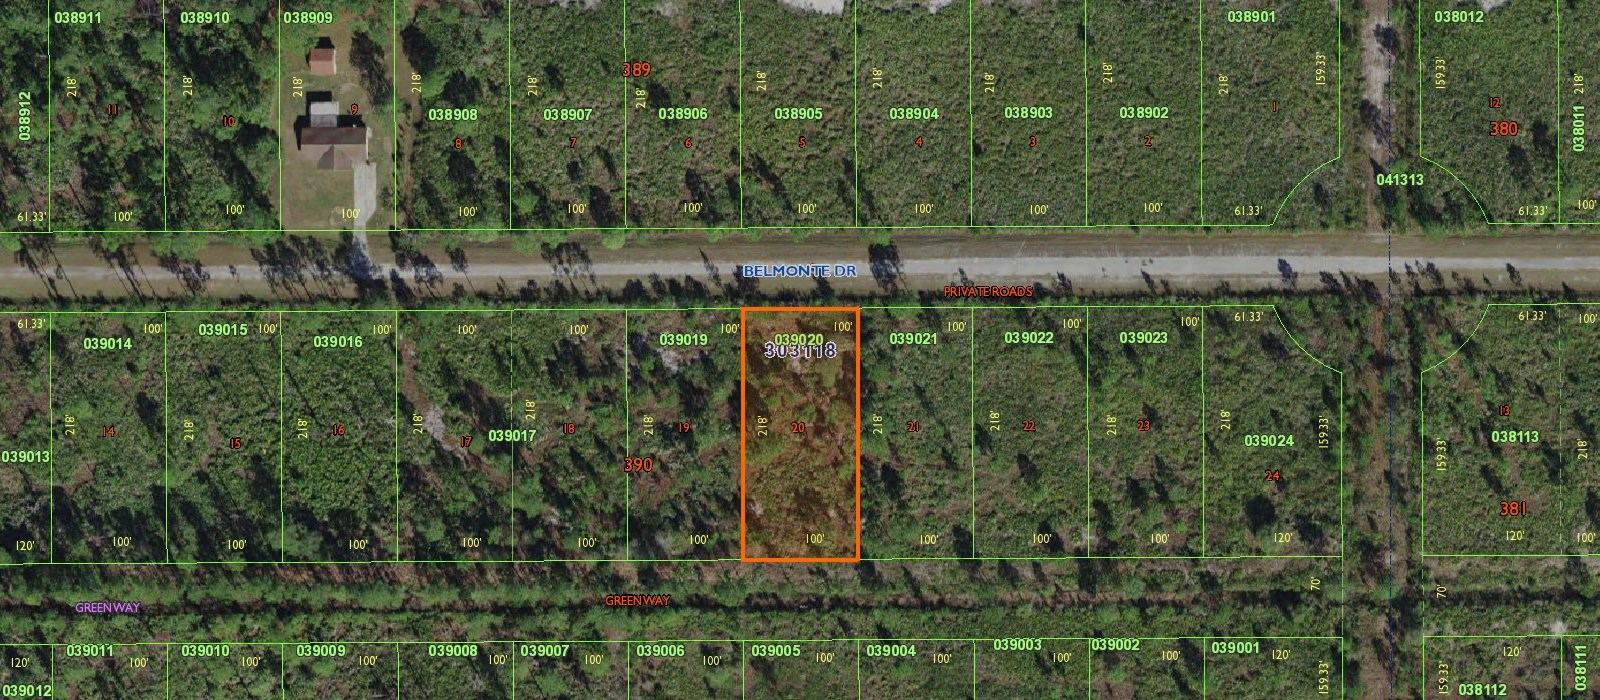 GOLF COURSE COMMUNITY, 0.50 VACANT LAND, CENTRAL FLORIDA